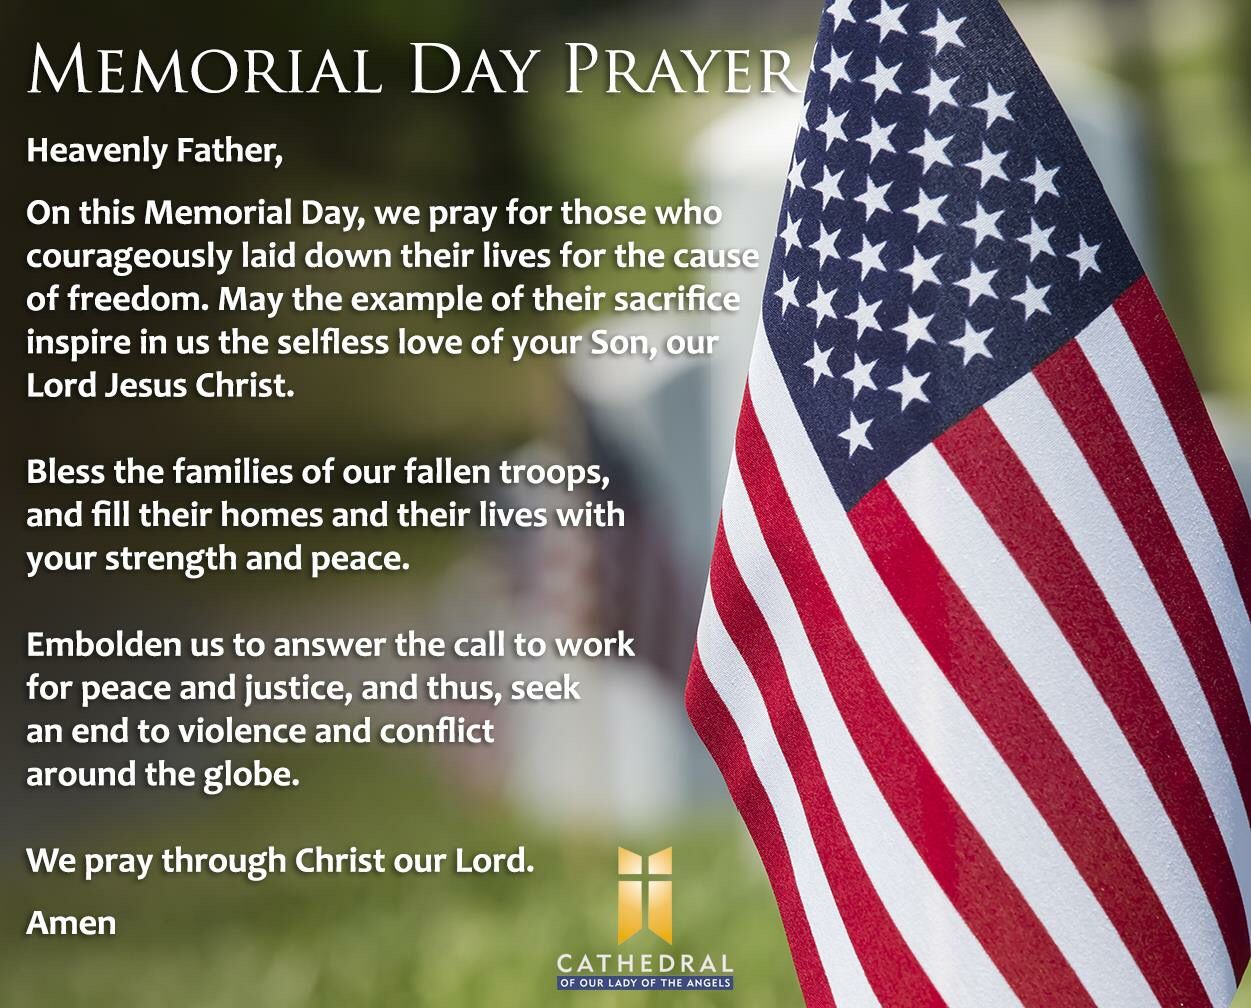 Memorial Day prayer (With images) | Memorial day prayer, Morning ...